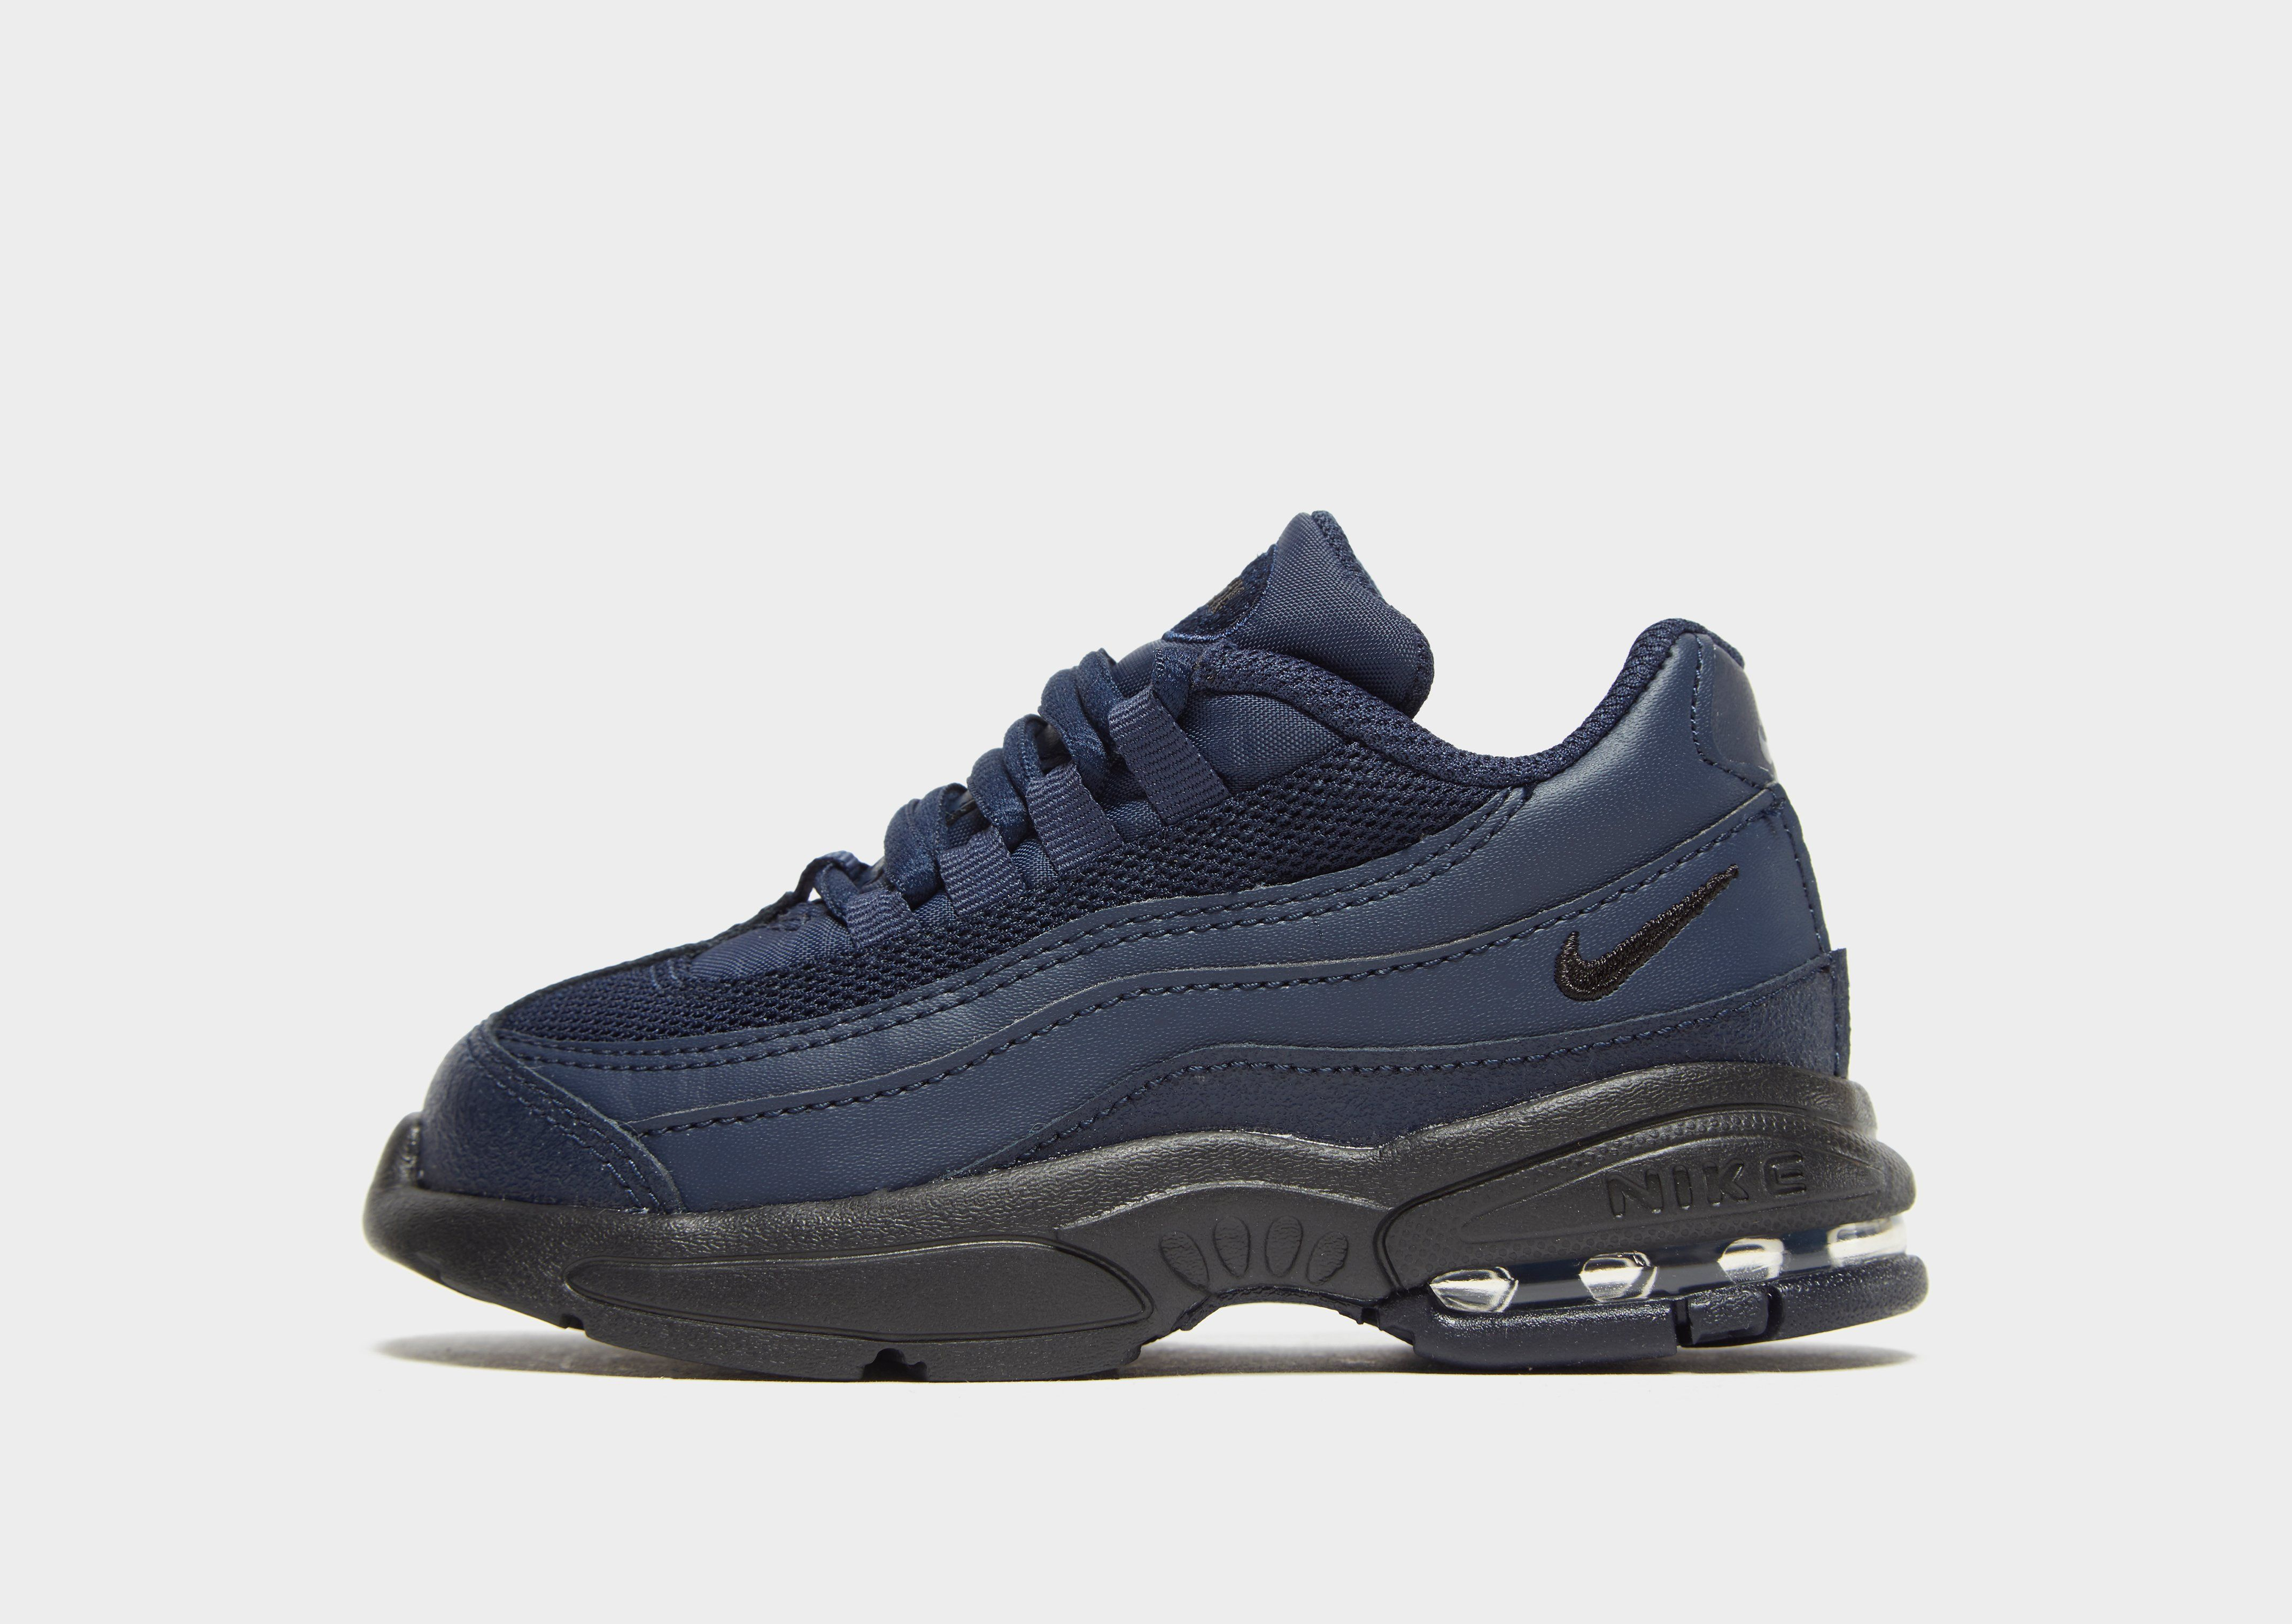 quality design 07dc1 23ba8 ... usa nike air max 95 infant jd sports f0a76 e8b71